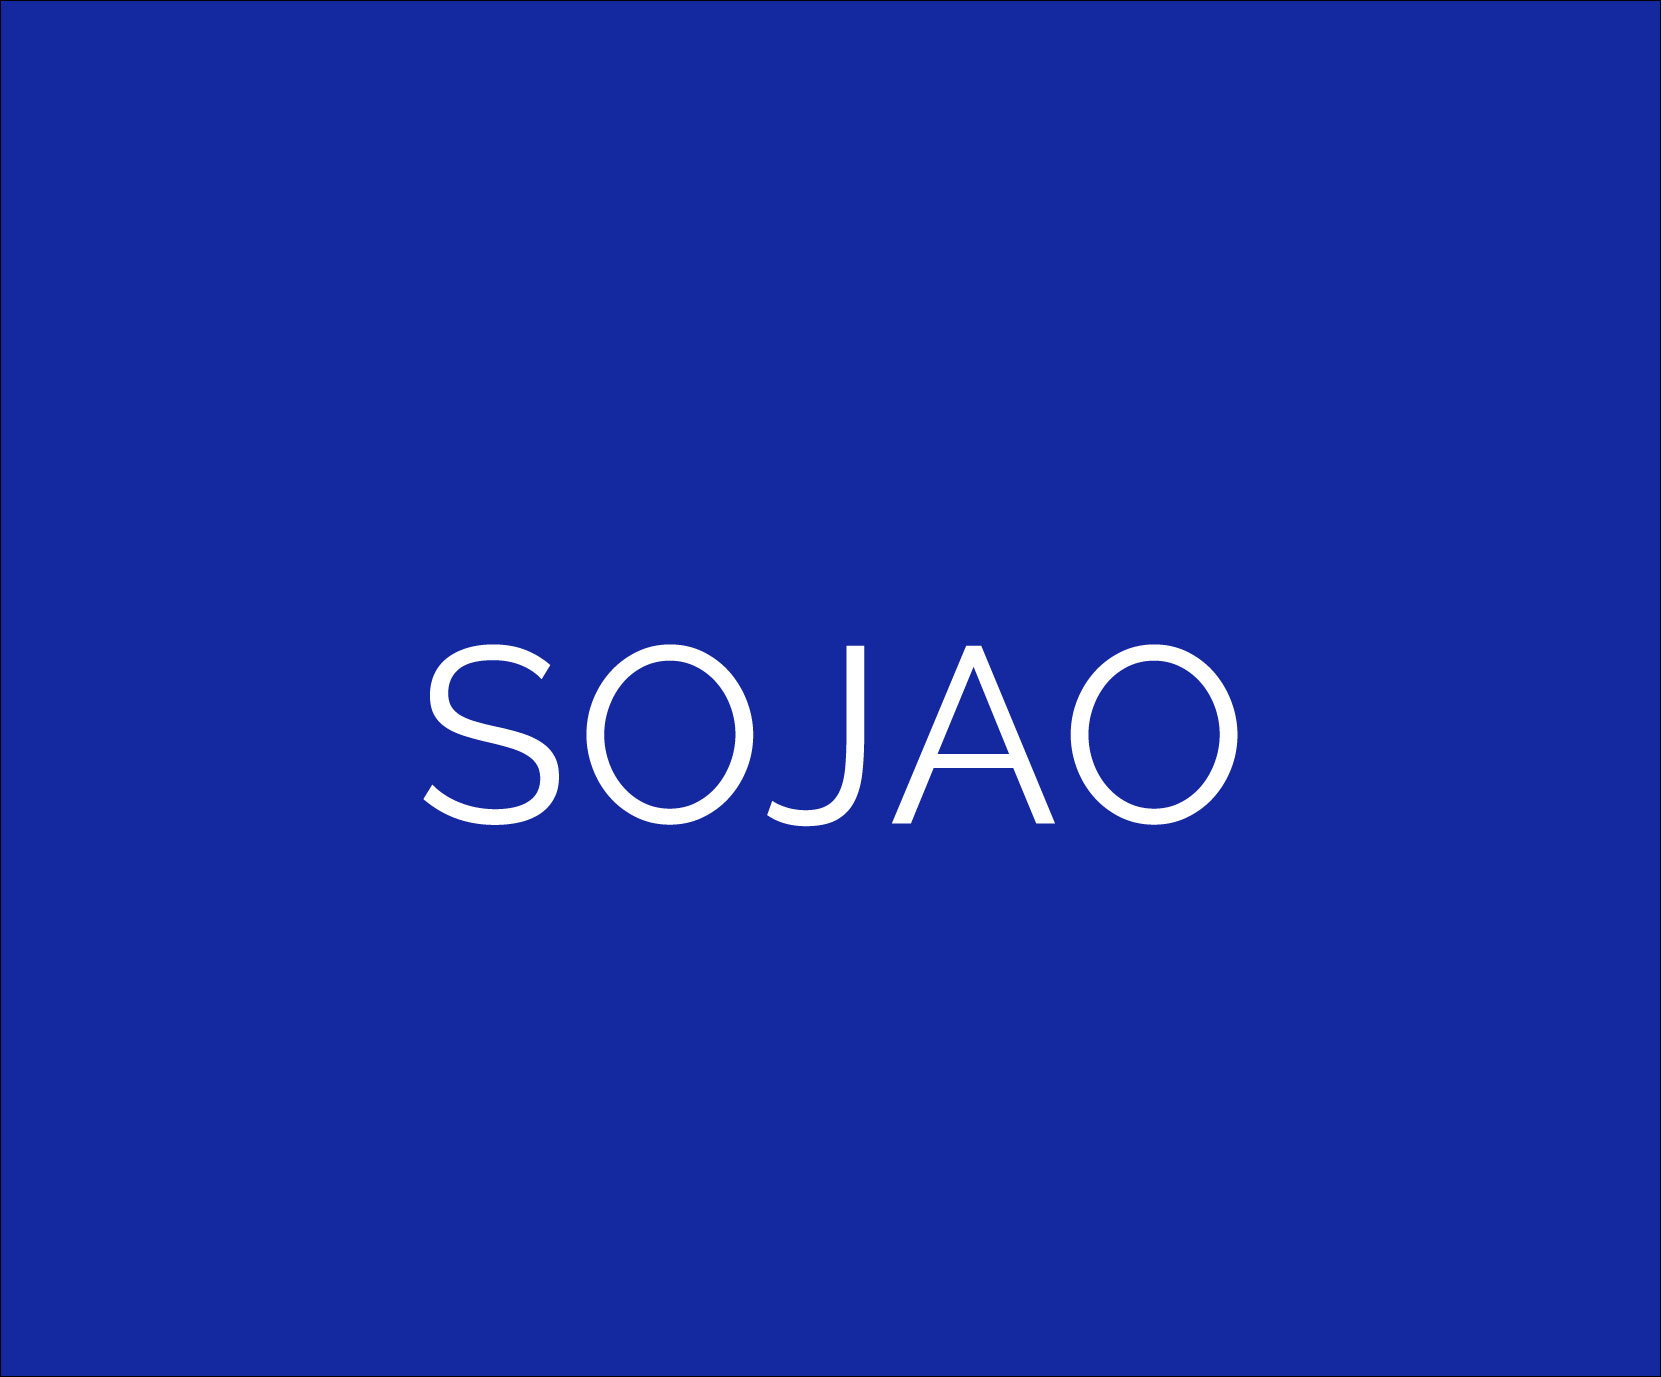 Sojao-Master-Logo-white-on-blue.jpg